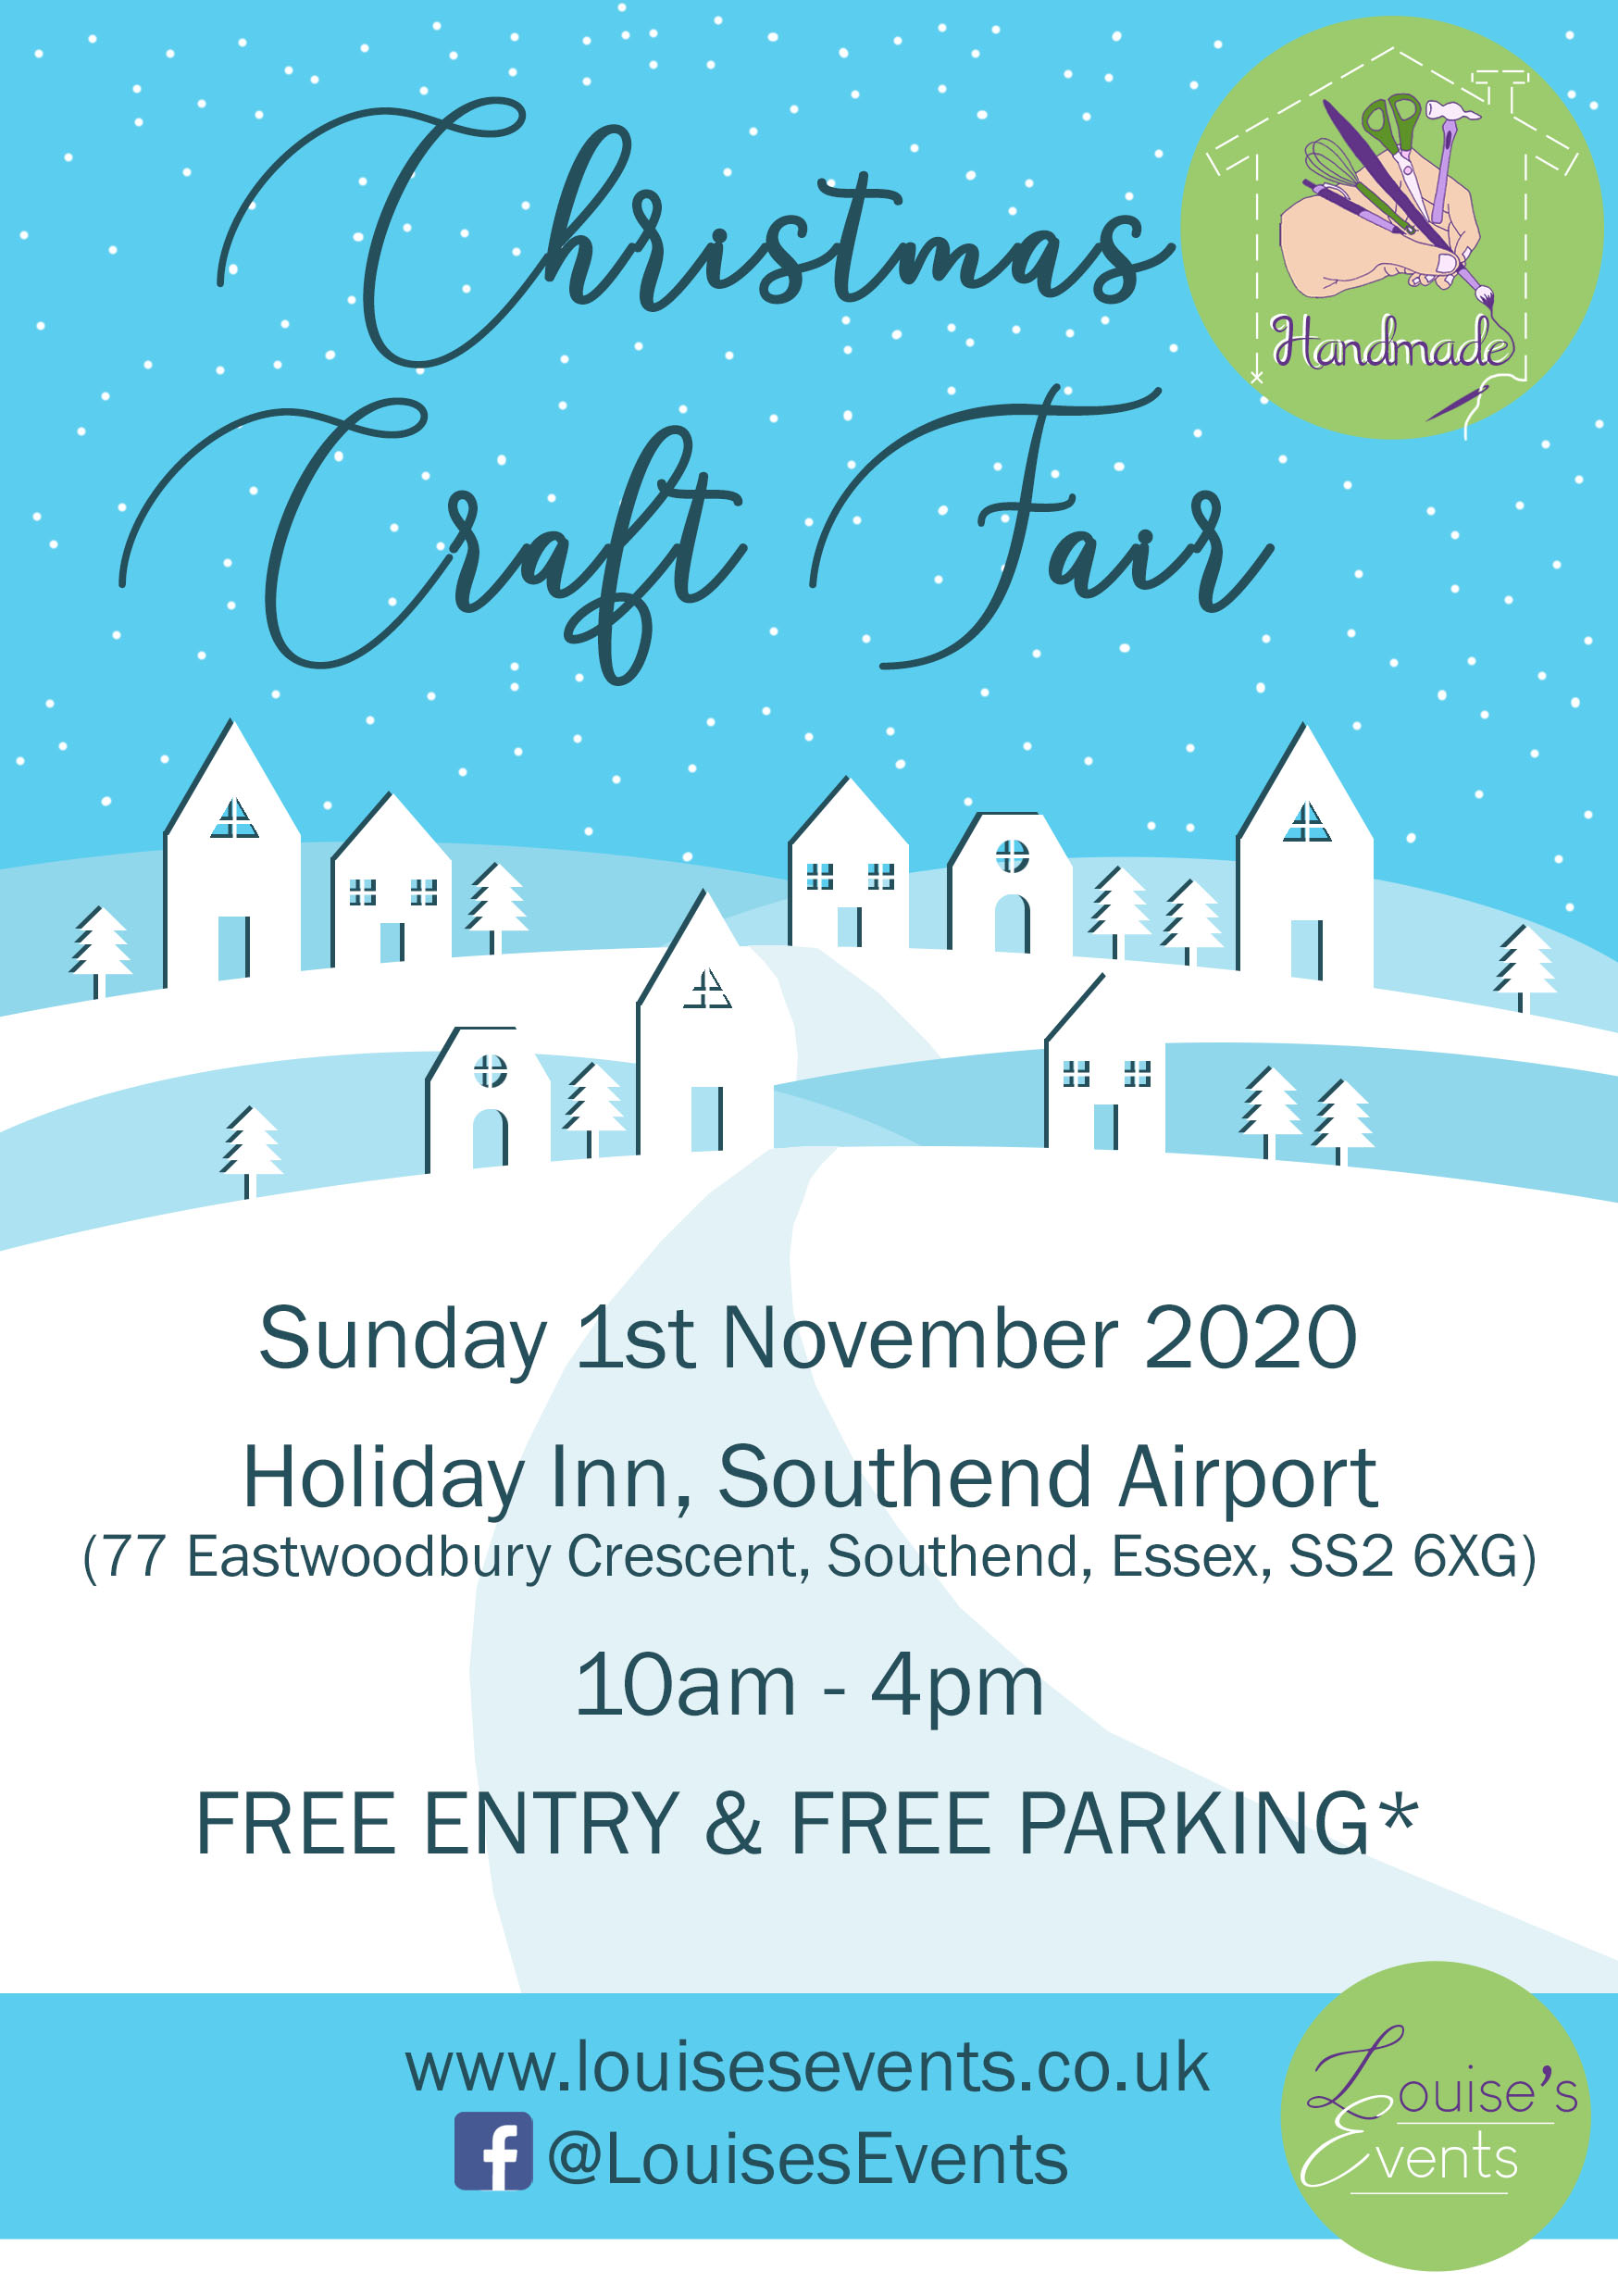 Christmas Craft Fair by Louise's Events